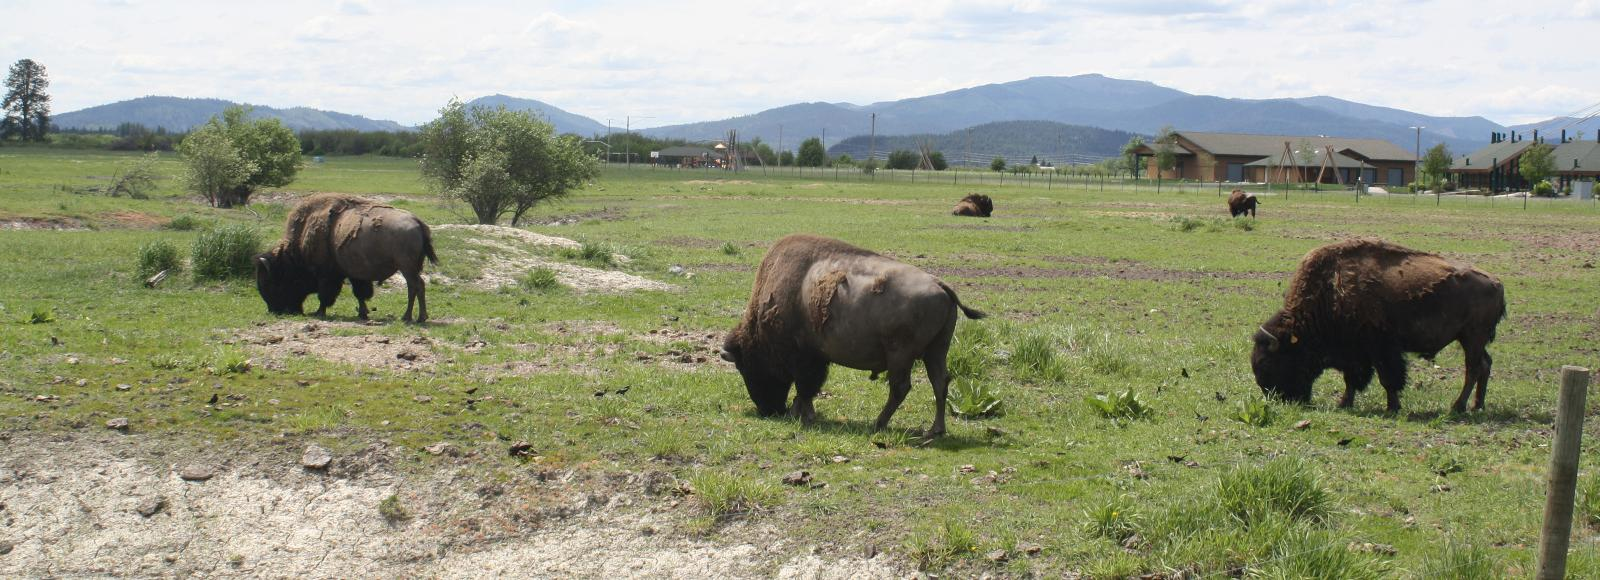 A few buffalo graze on a pasture. A couple small buildings with angled roofs are in the distance.